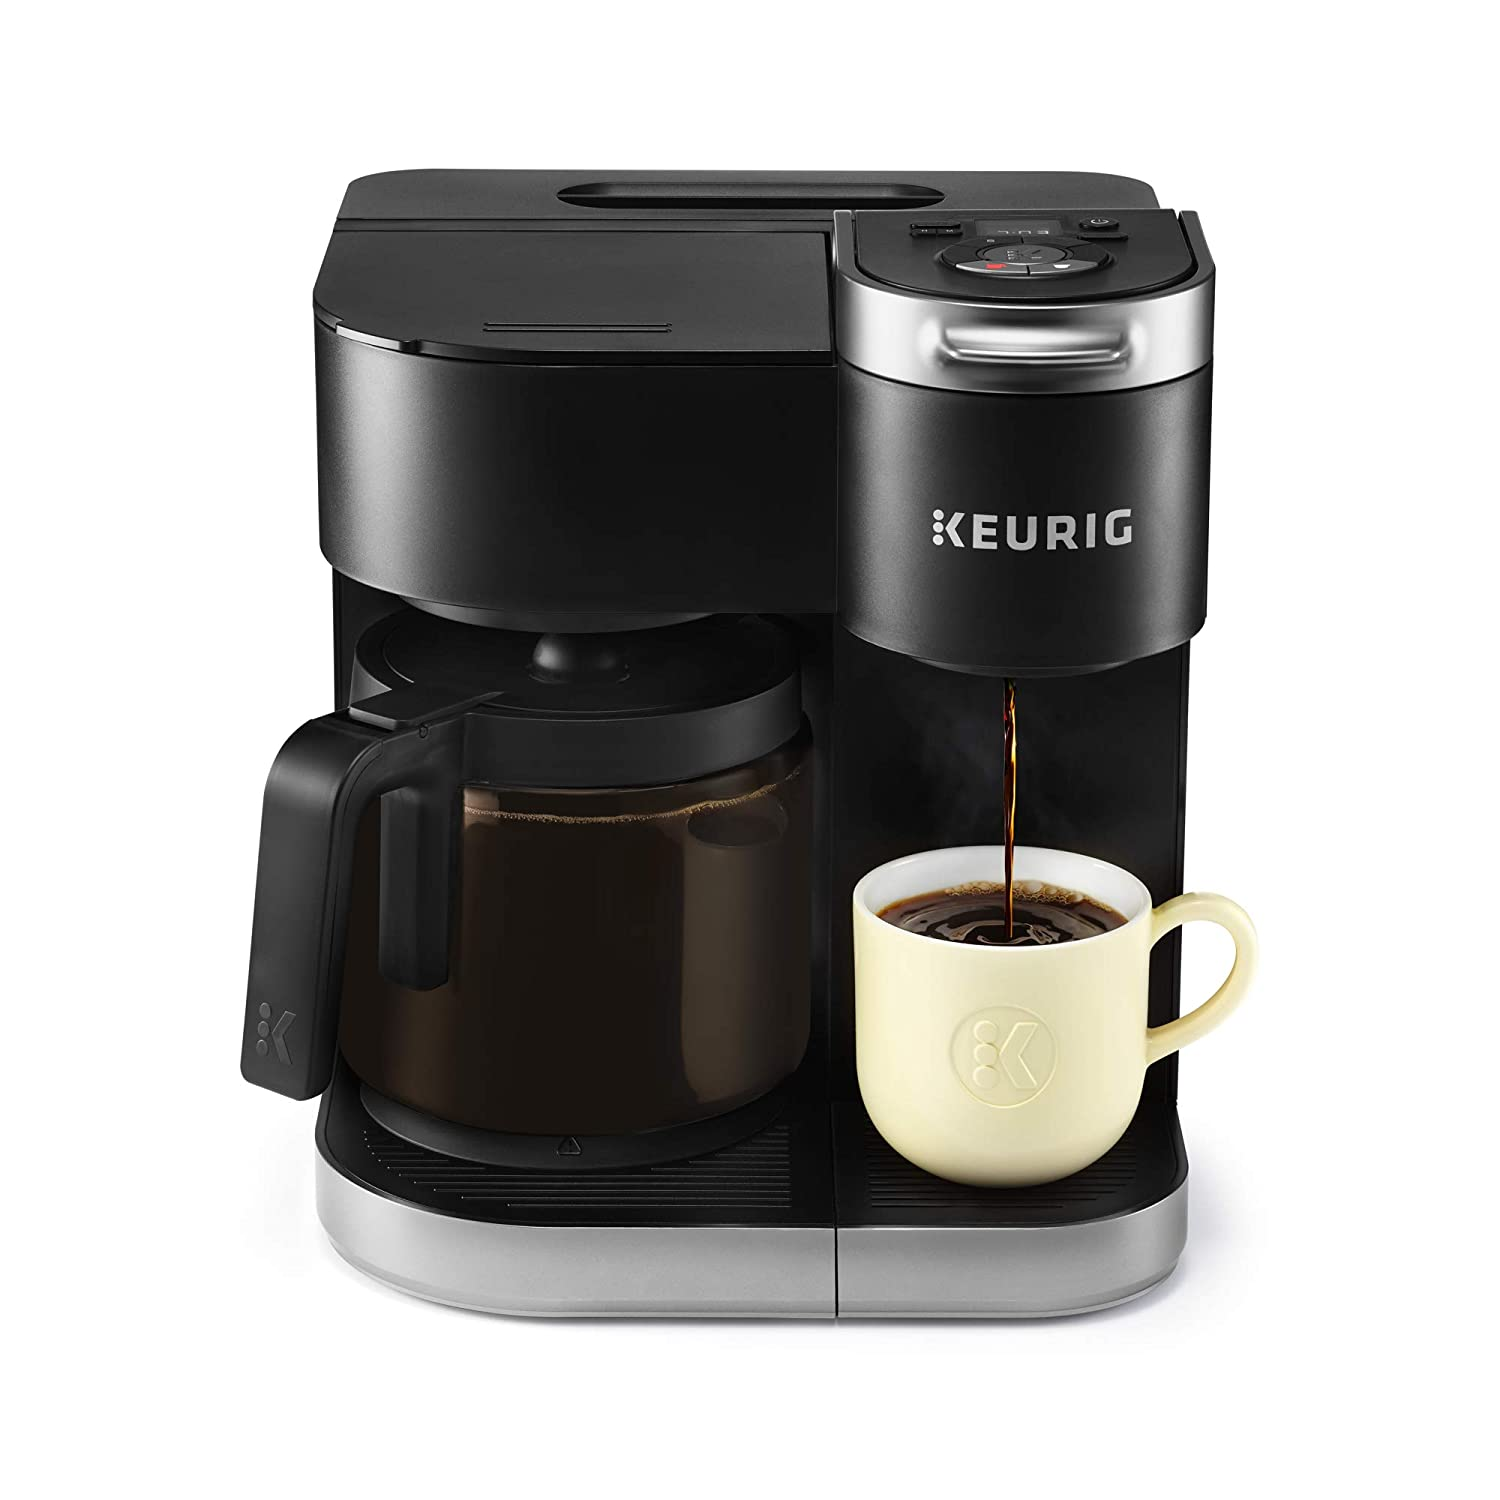 Keurig K-Duo Coffee Maker, Single Serve and 12-Cup Carafe Drip Coffee Brewer